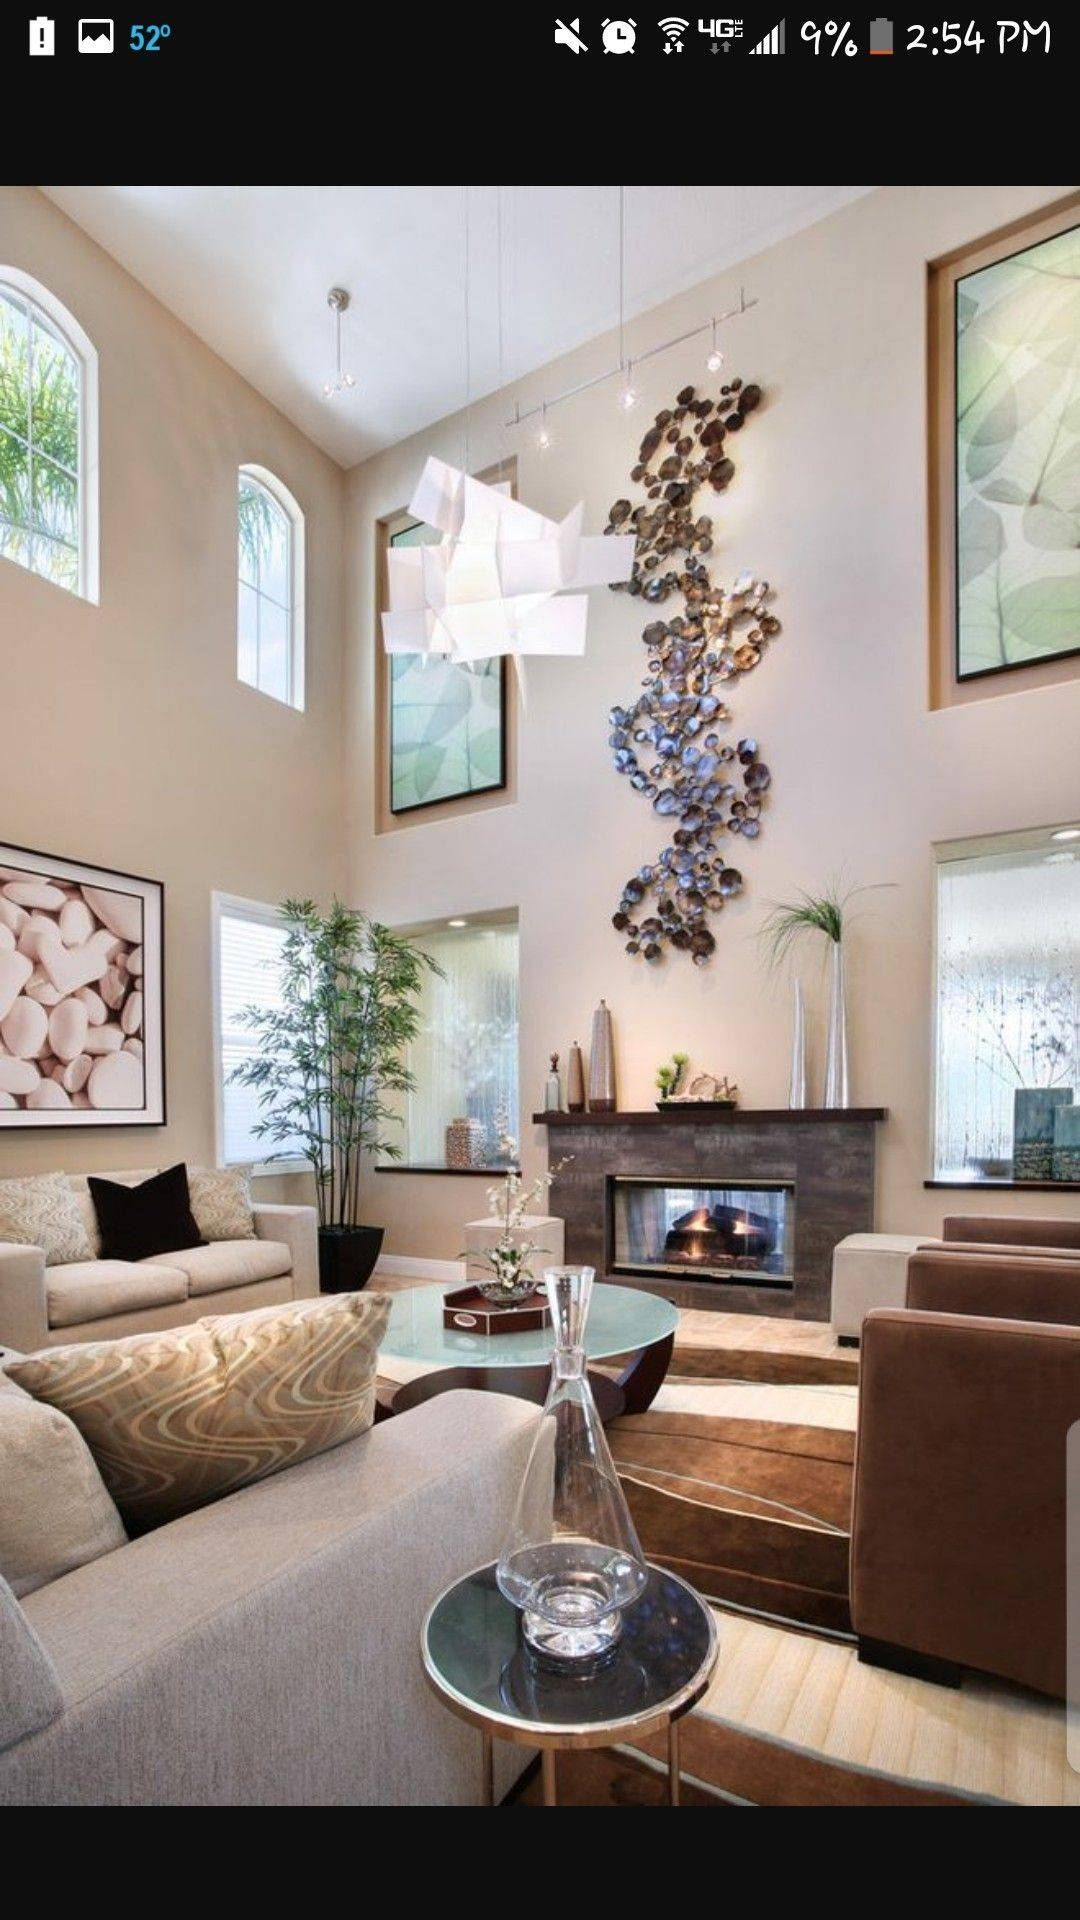 Decorating Rooms With High Ceilings Https Homecreativa Com Decorating Rooms With High Ce High Ceiling Living Room Living Room Draperies Living Room Ceiling